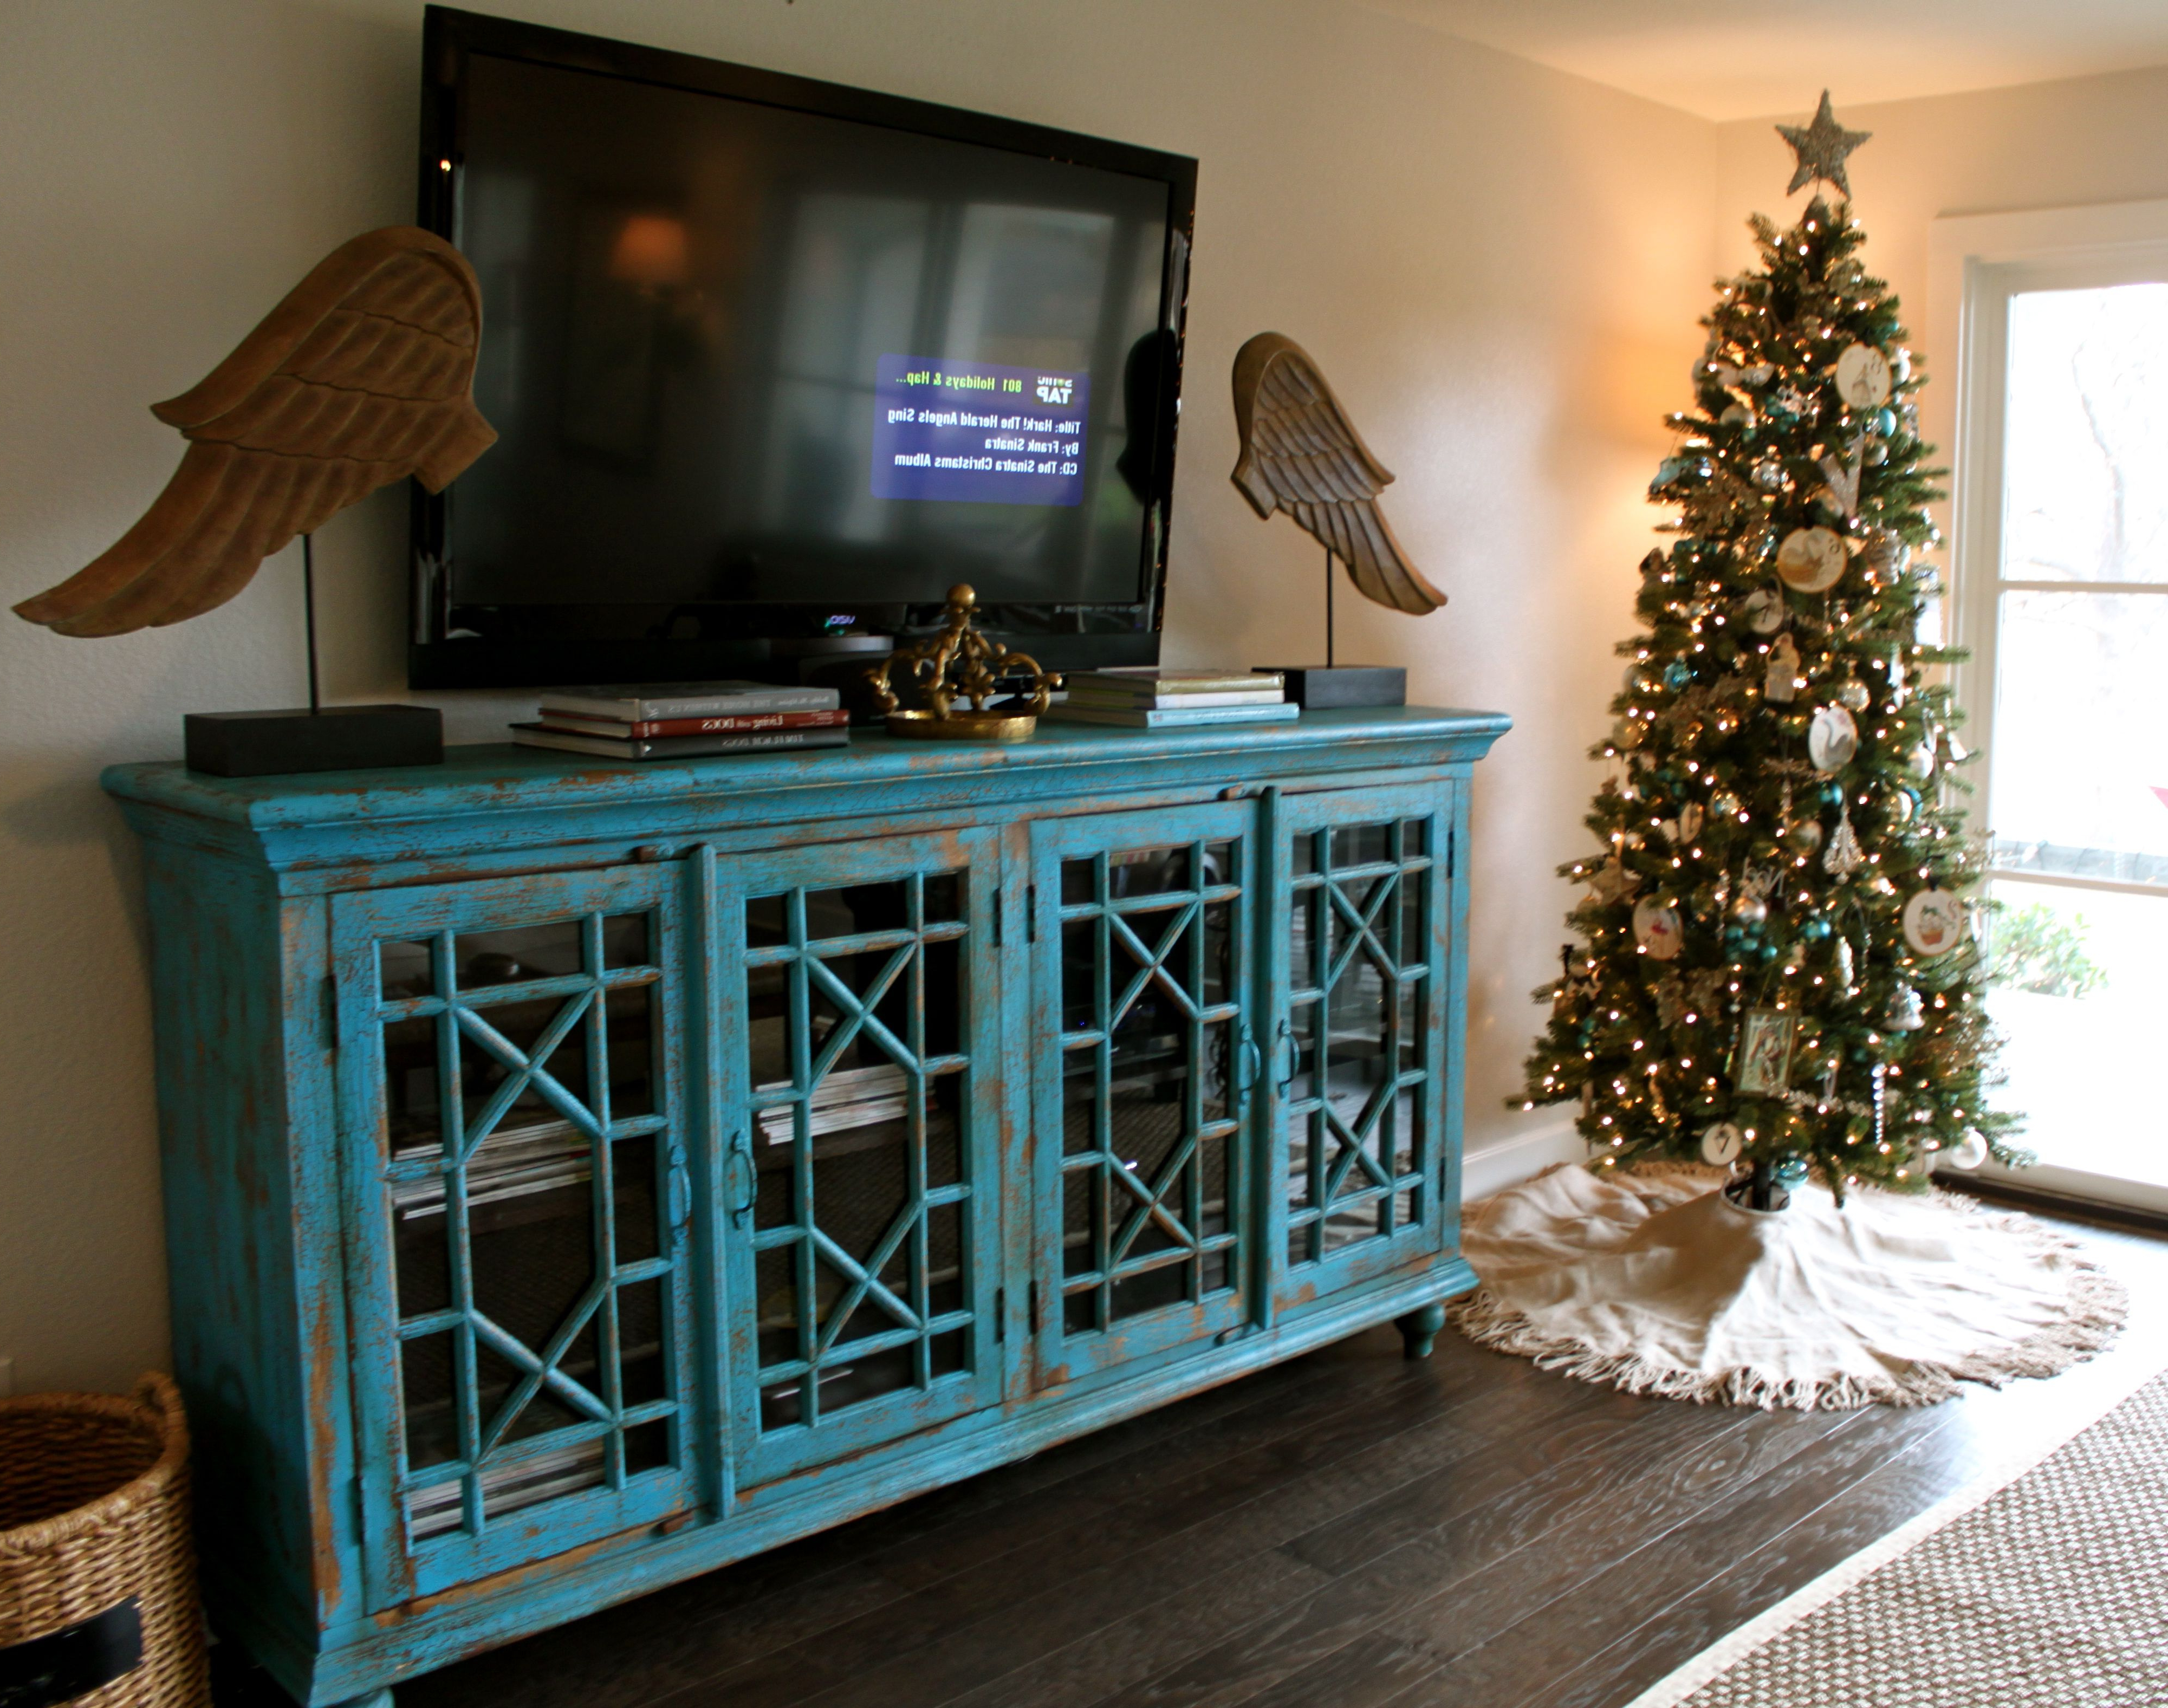 Pinleah Taylor On Decor | Diy Tv Stand, Room, Tv Cabinets Within Annabelle Blue 70 Inch Tv Stands (View 8 of 20)